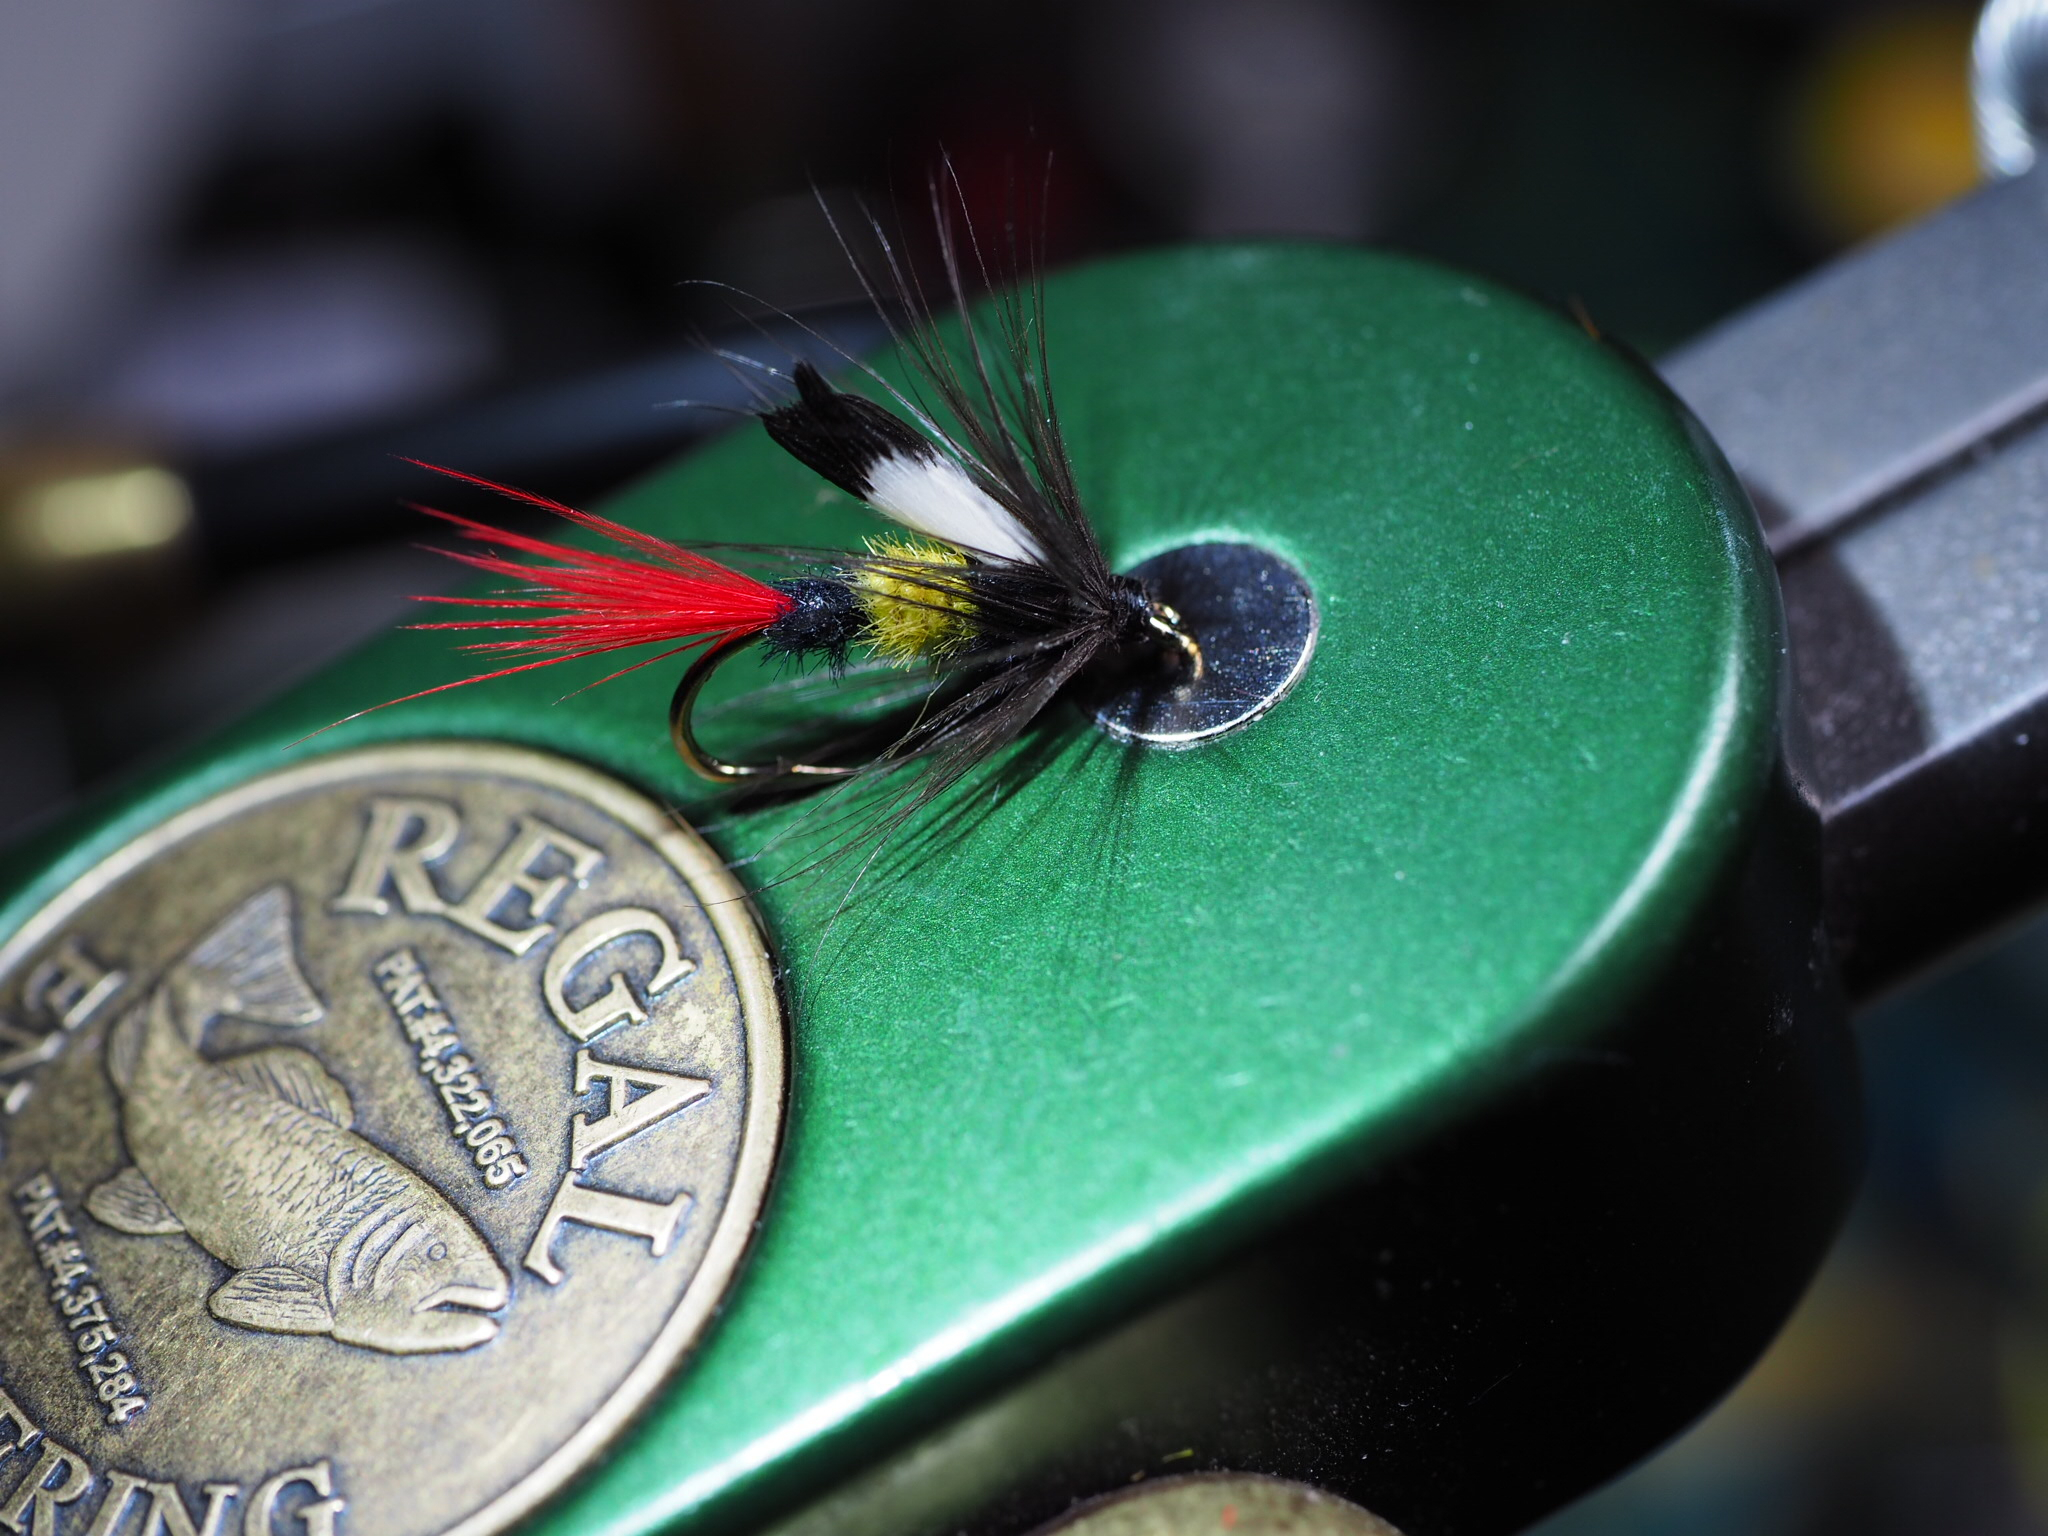 The McGinty is a great pattern to use once things warm up a bit.